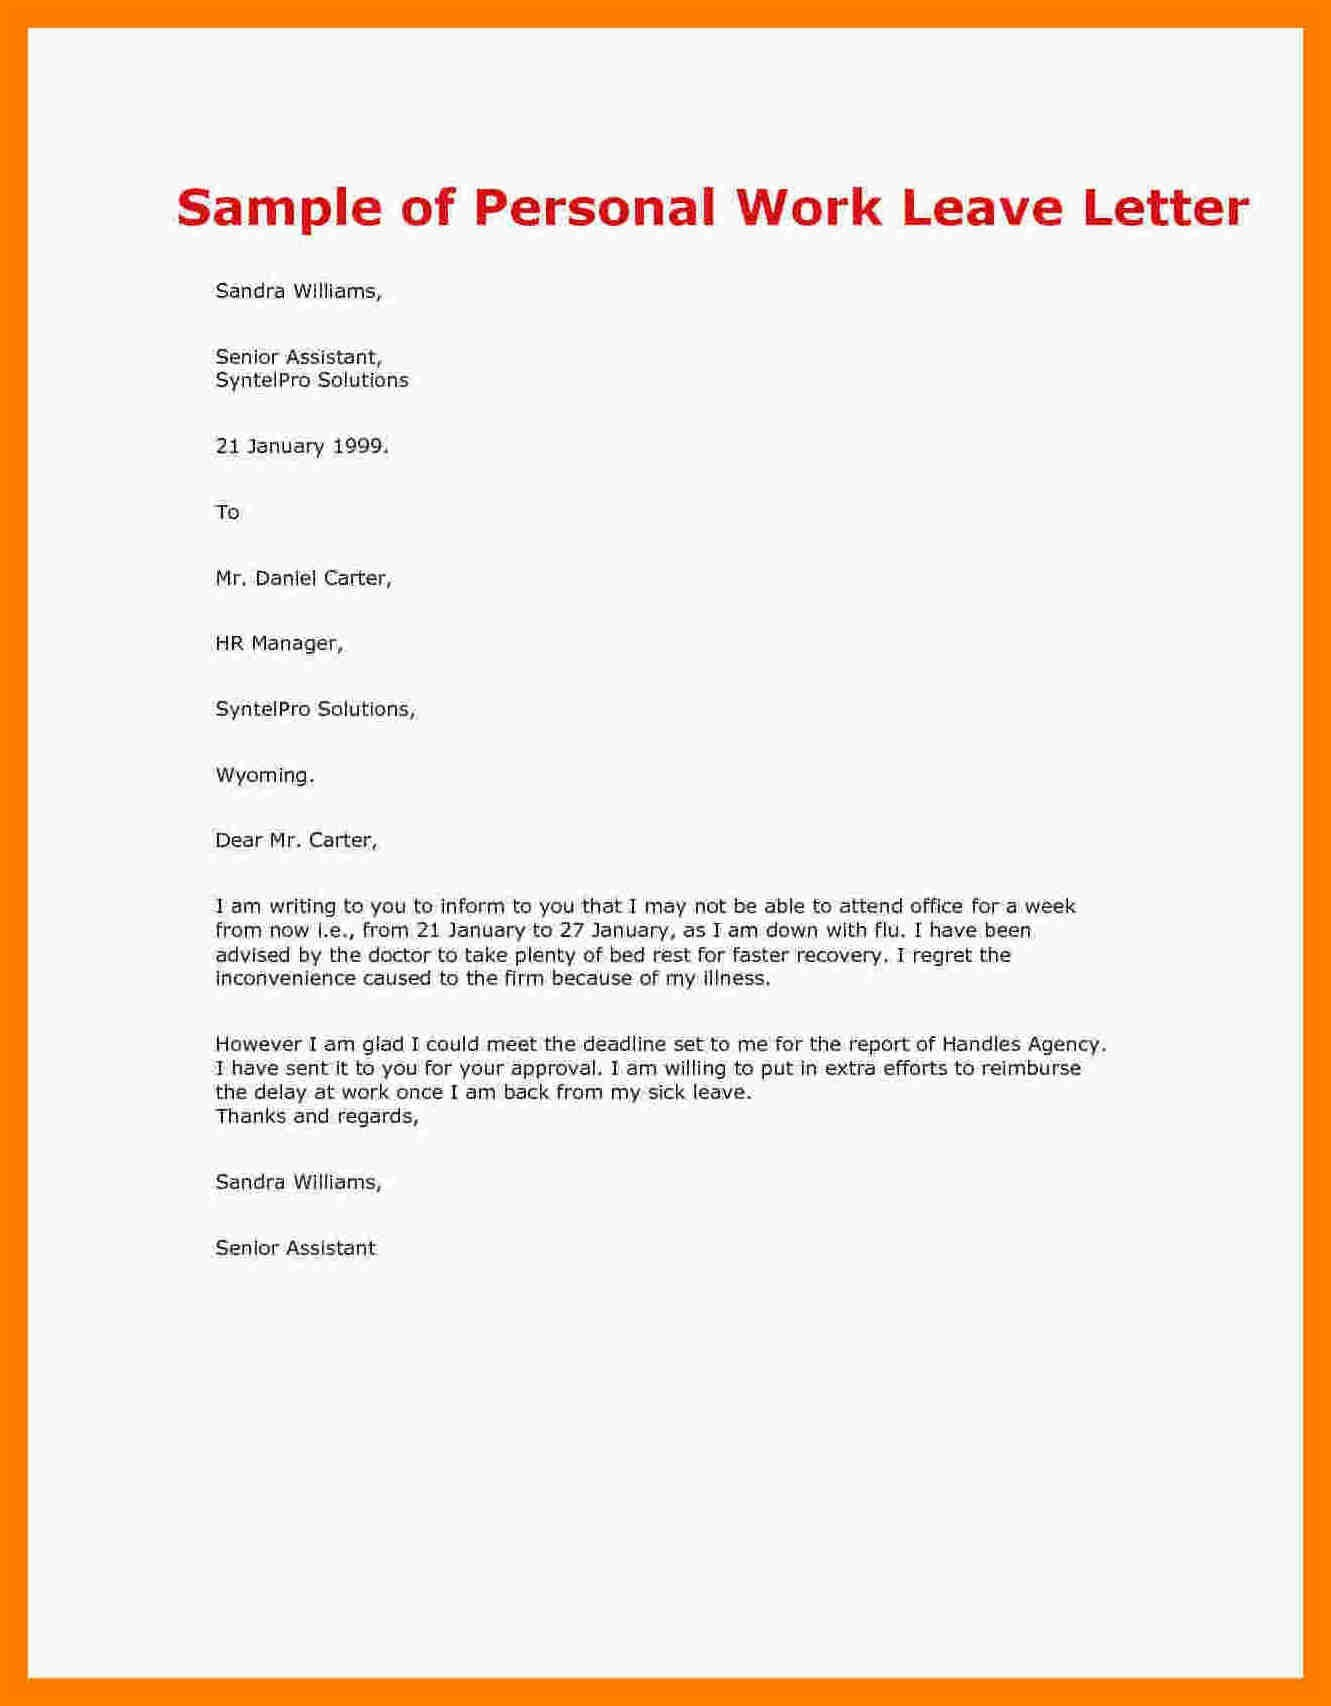 Personal Leave Of Absence Letter Template - Paternity Leave Letter Template Uk Fresh Returning to Work after